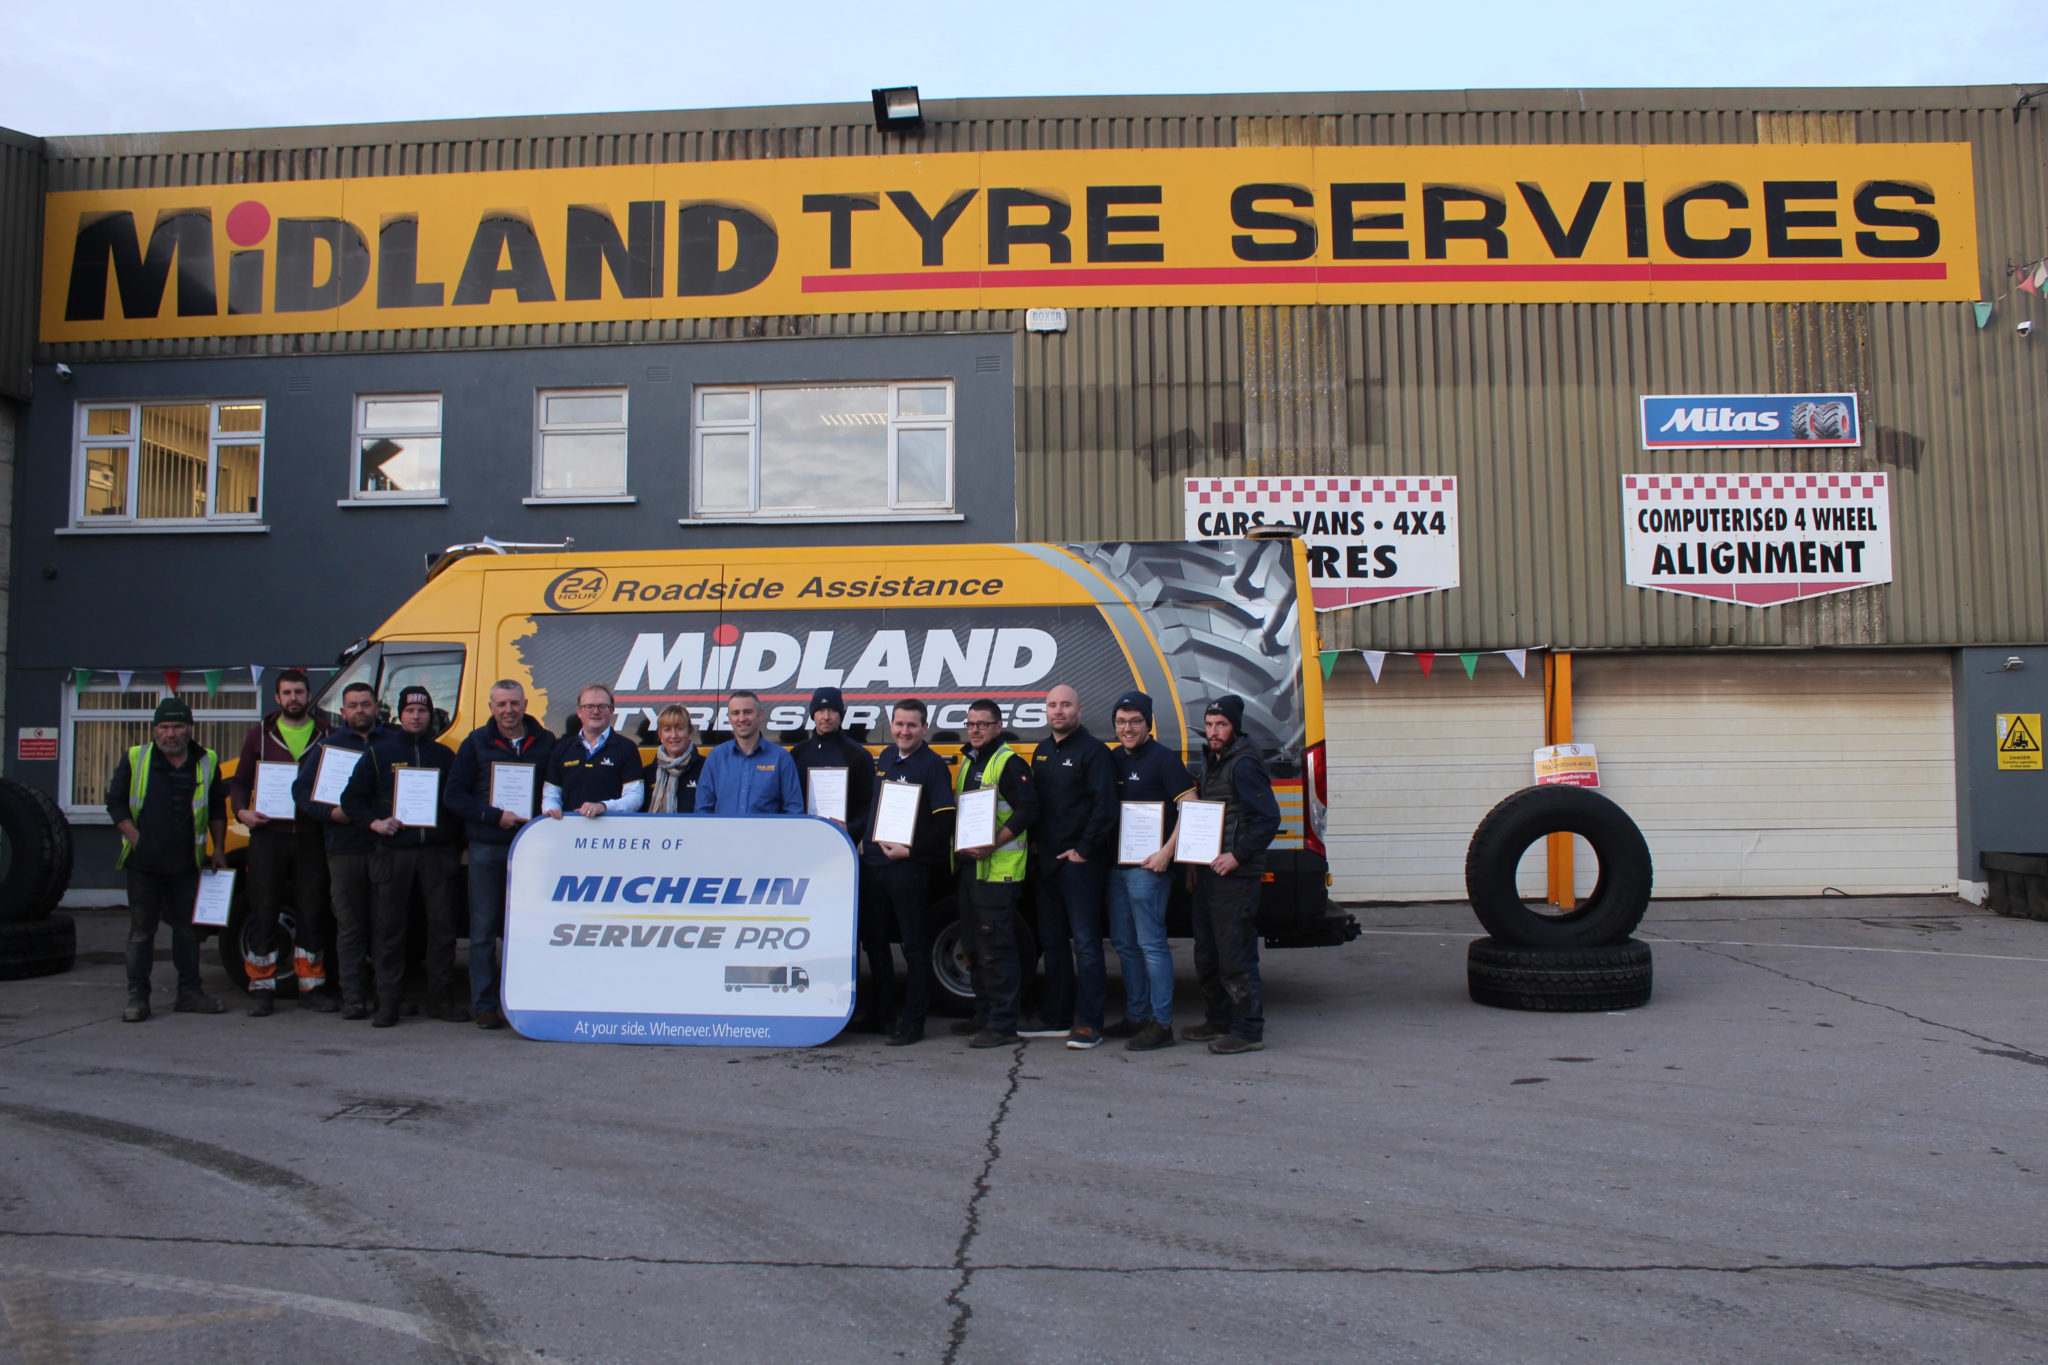 Michelin Midland Tyre Services